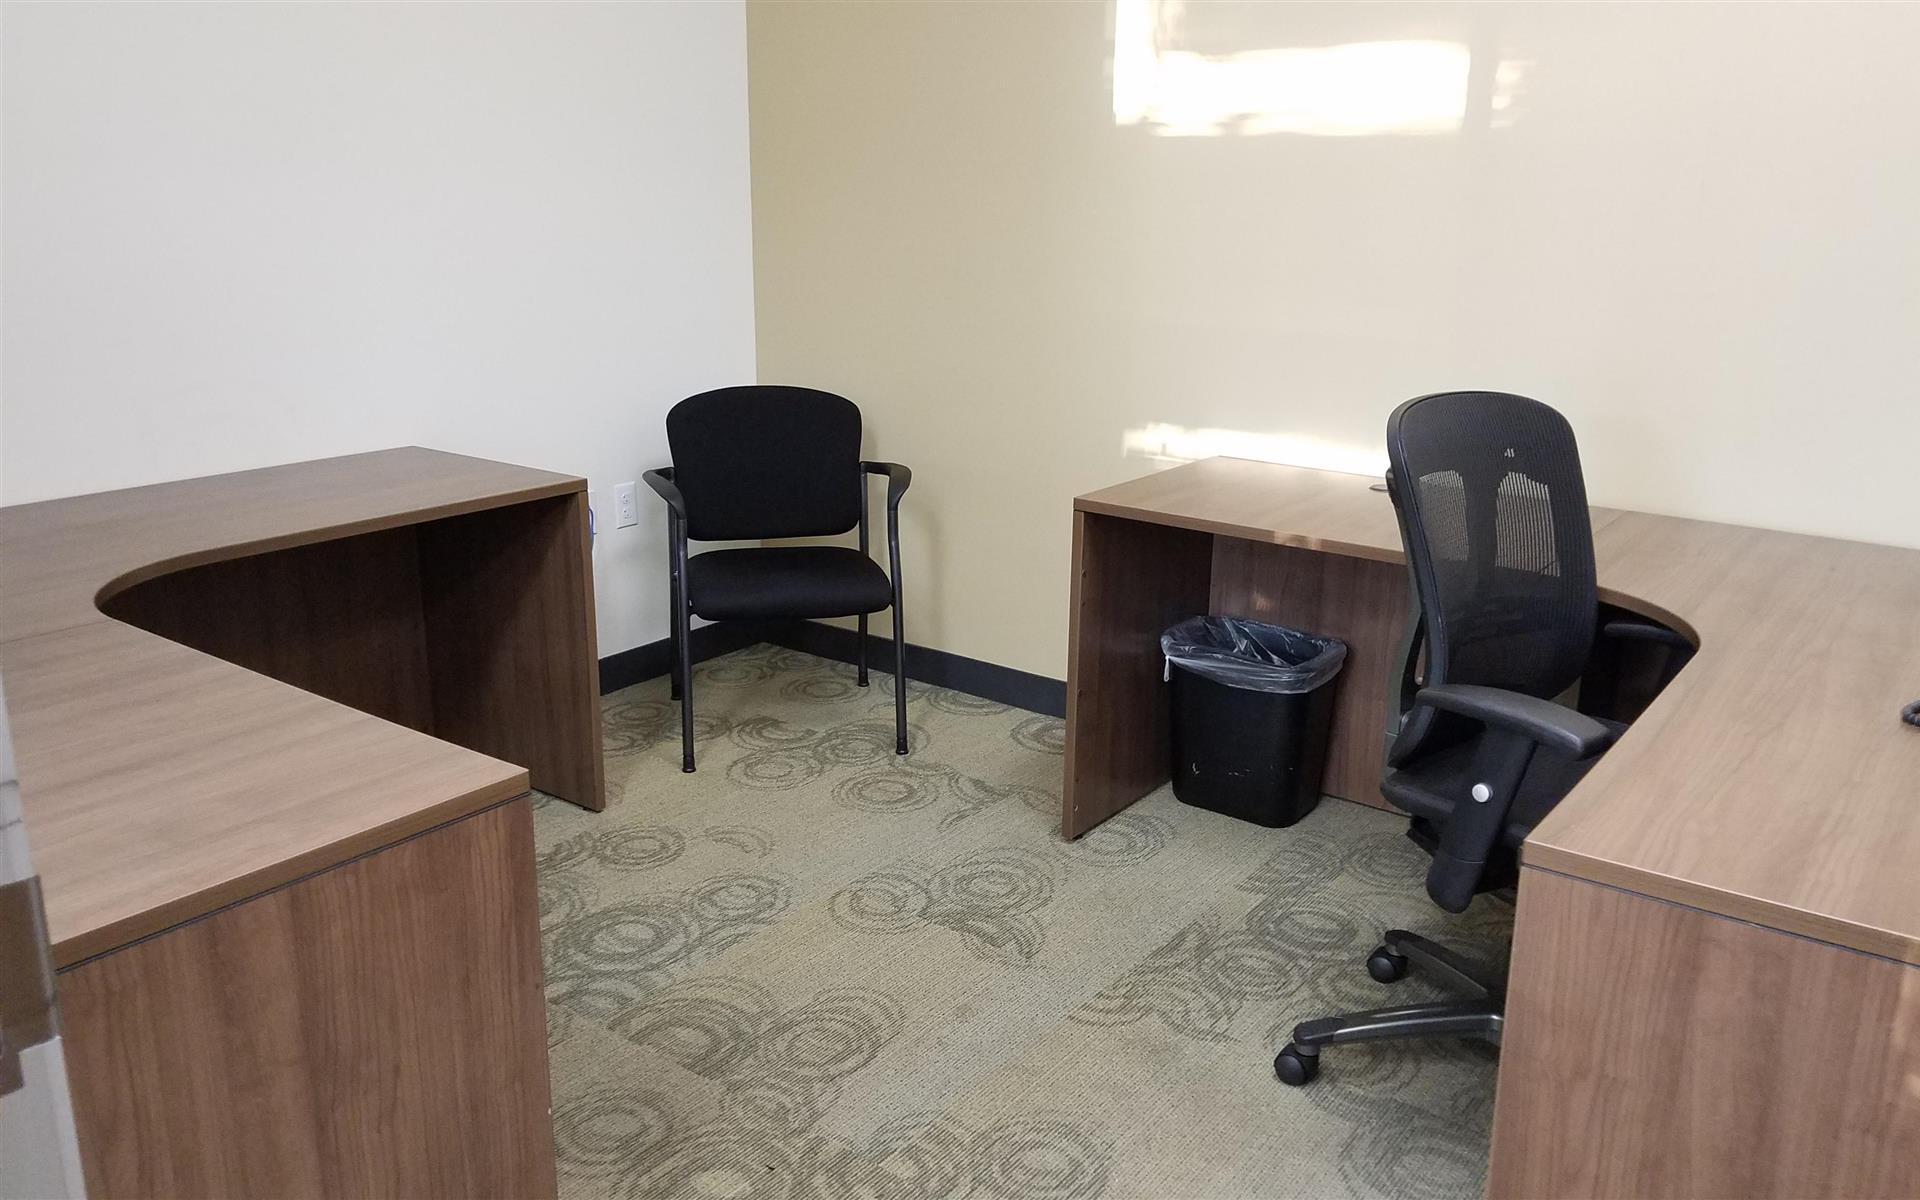 Better Homes and Gardens Real Estate- El Cerrito Office - Office Suite for Two